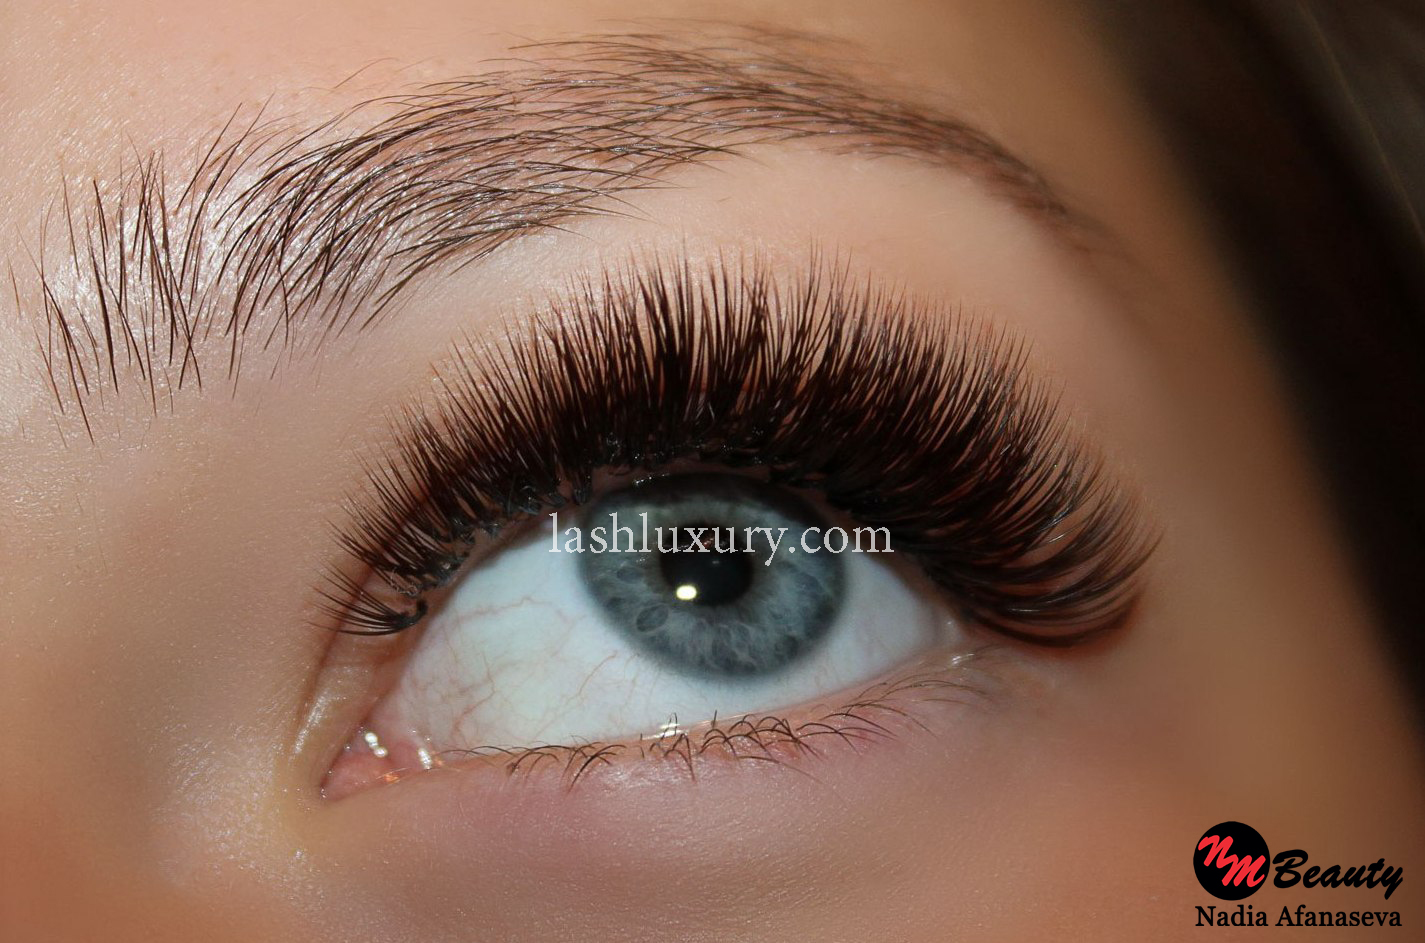 Diy Eyelash Extensions 12 43 Makeup Tattoo Removal Howto Go Jersey Shore This